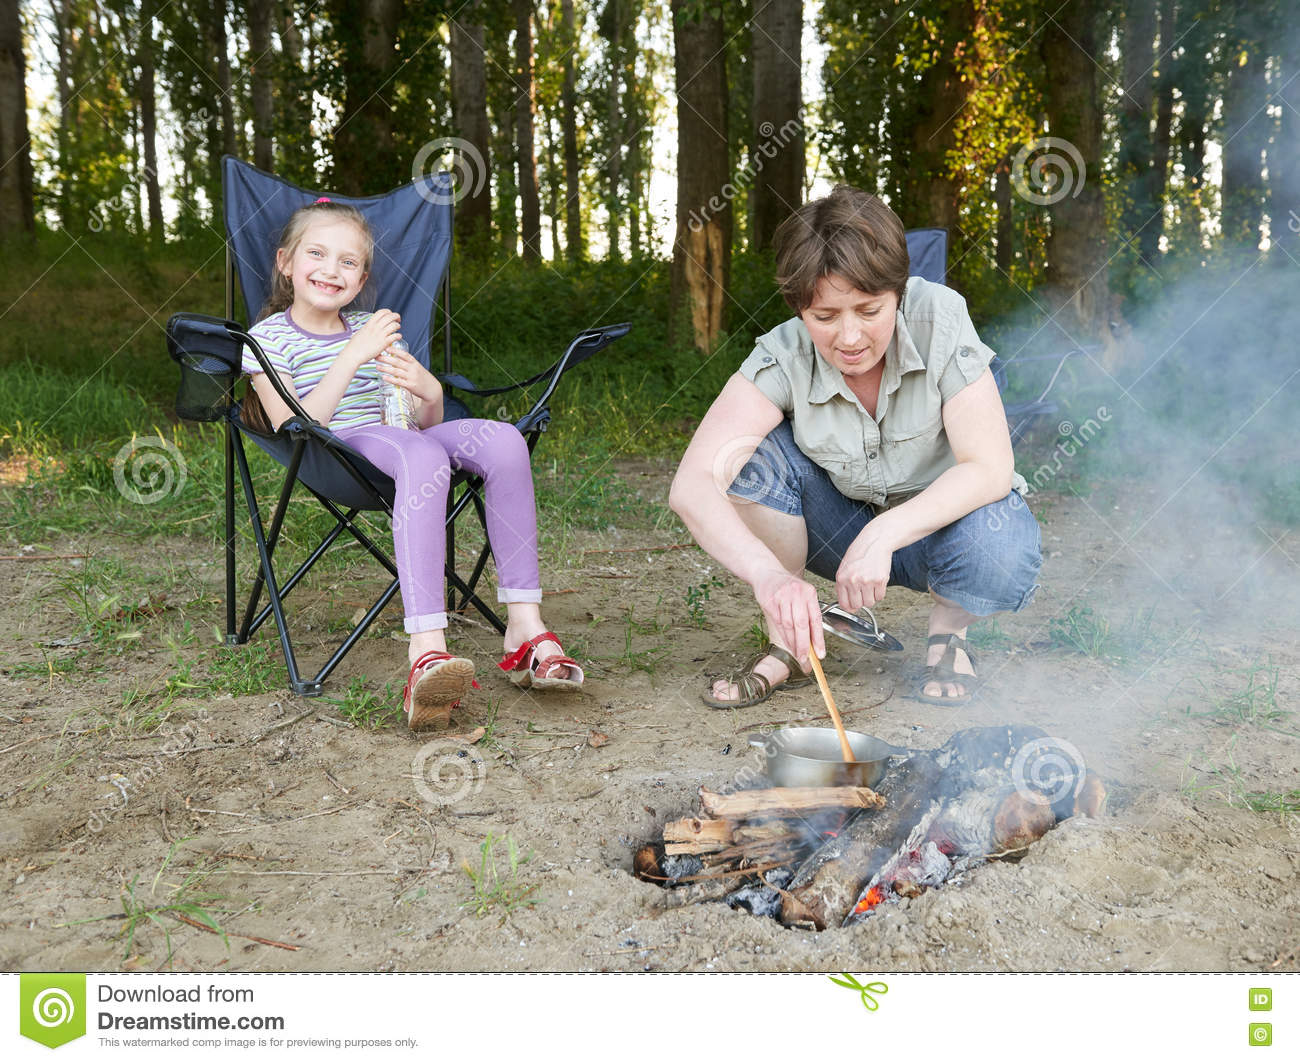 Woman cooking food, people camping in forest, family active in nature, child girl sit in travel seat, summer season